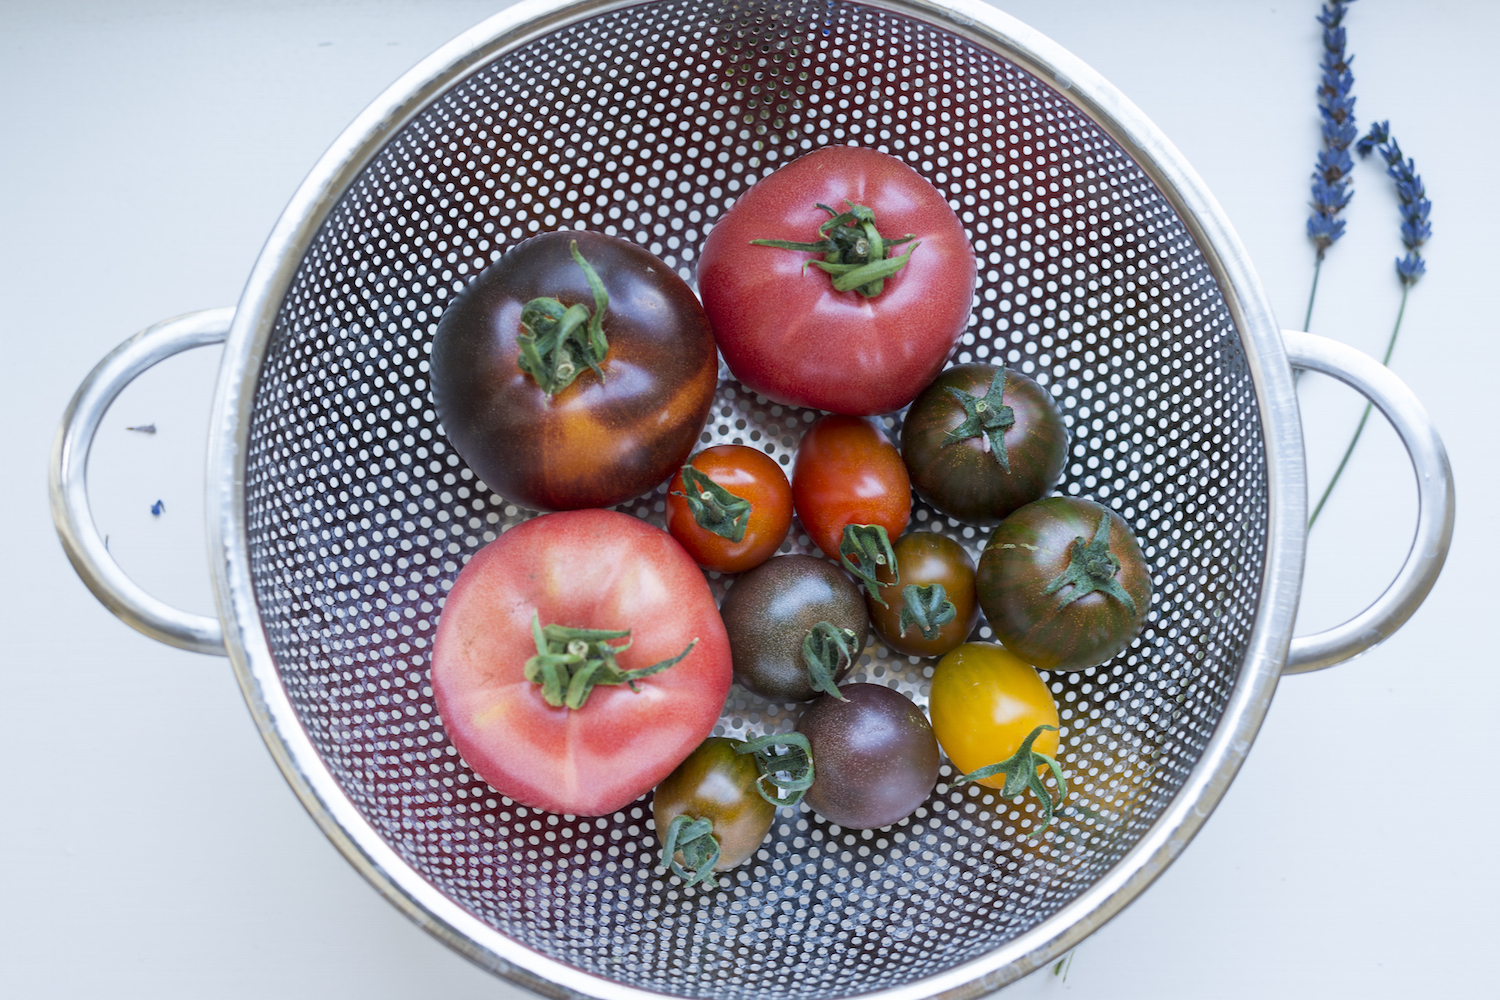 Colourful tomatoes from the farmers market.jpg